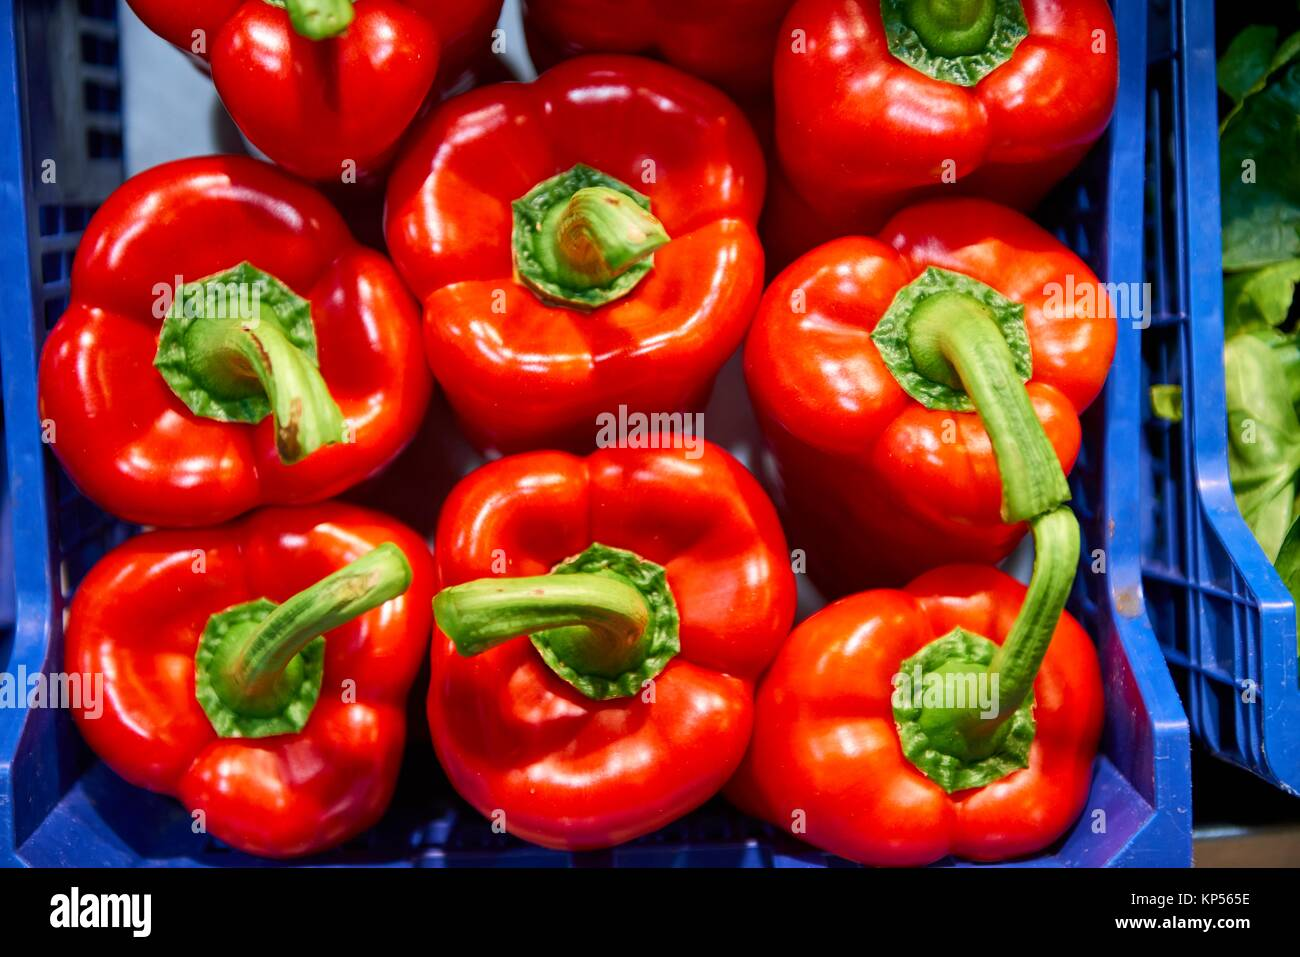 Red Peppers. - Stock Image